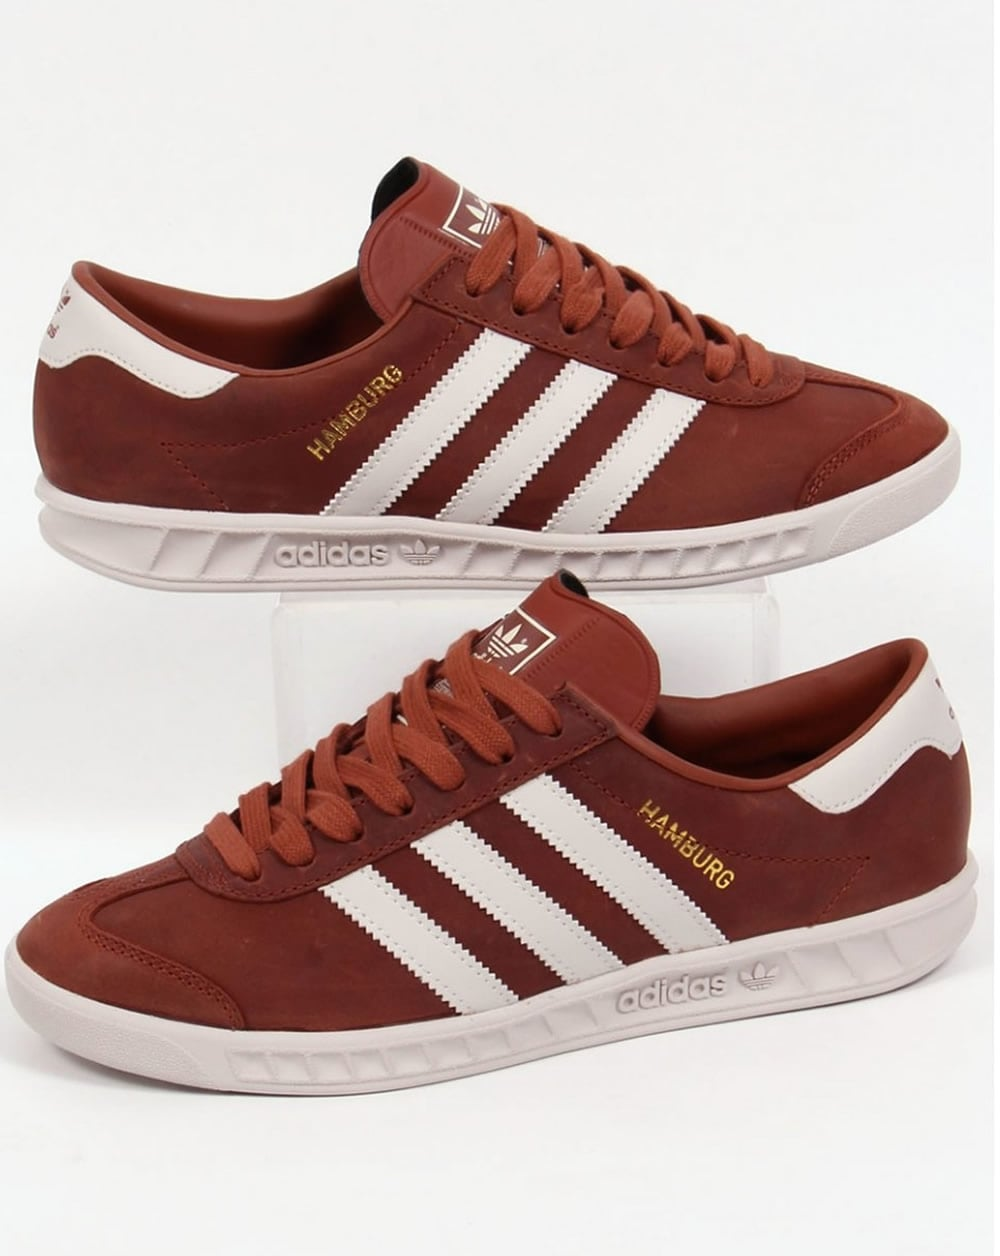 Adidas Jeans Shoes Brown